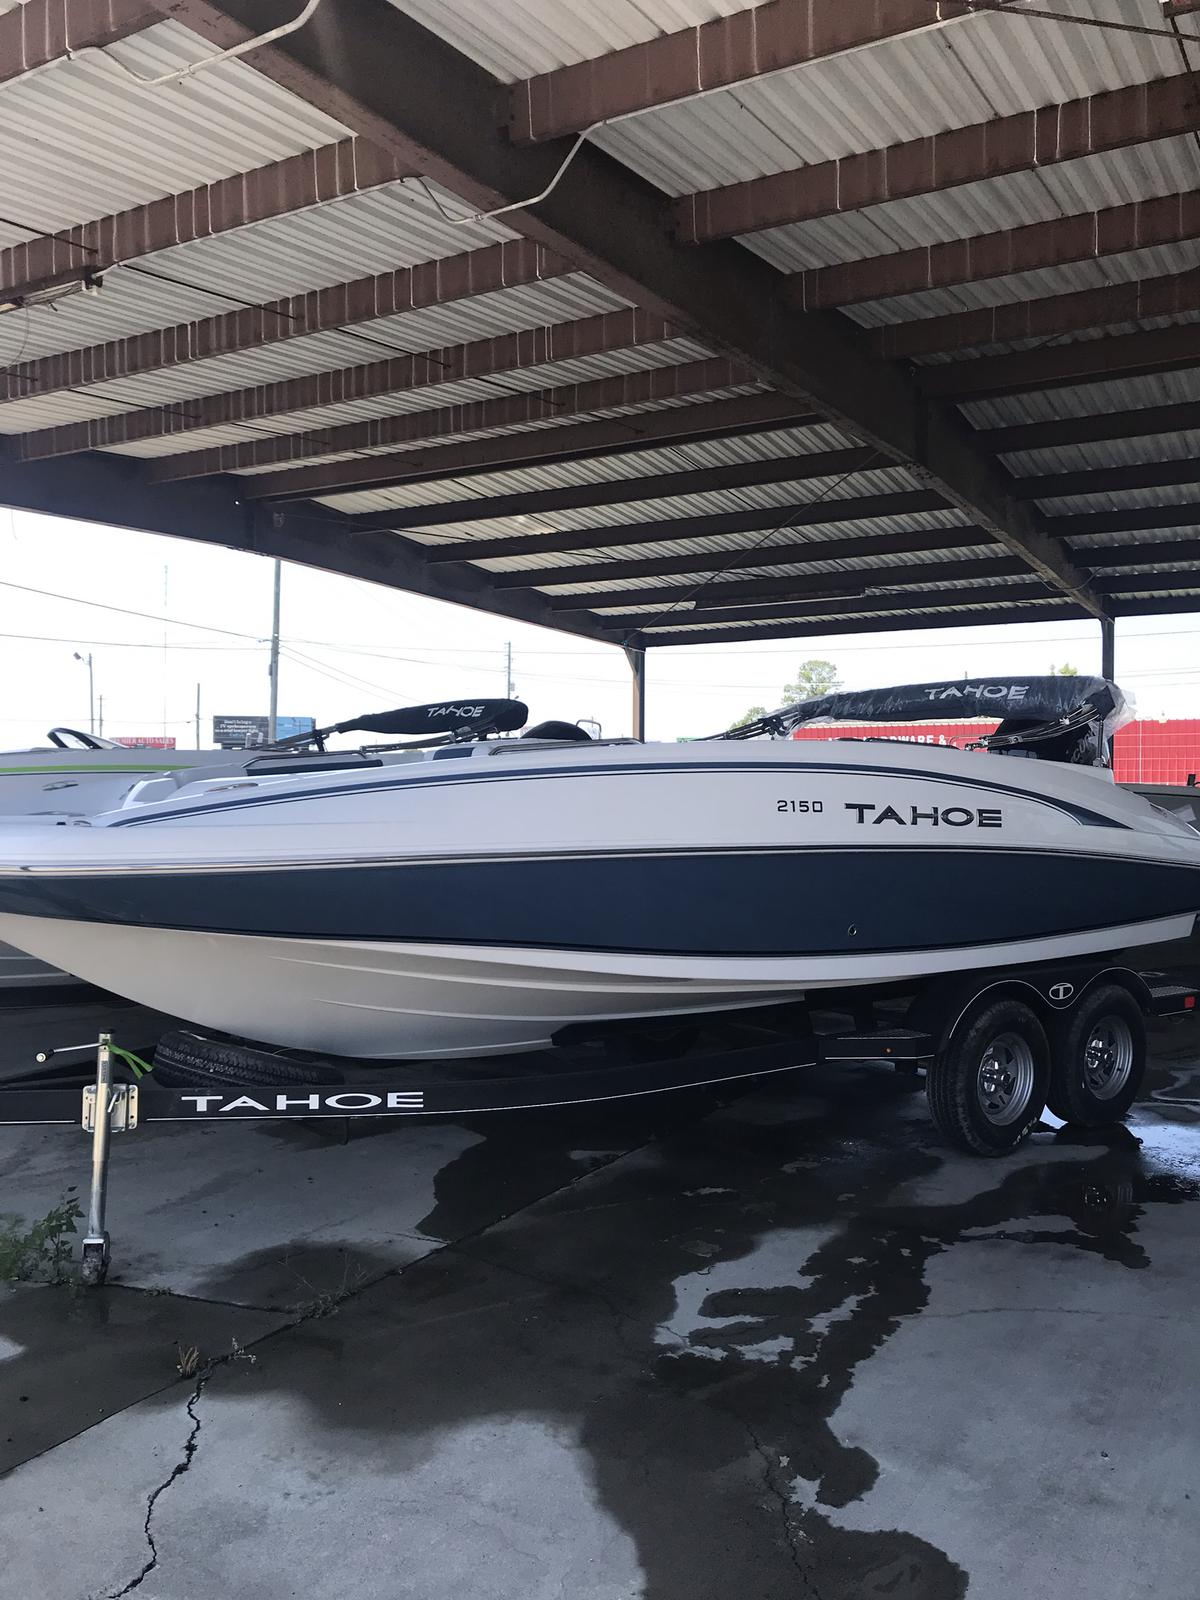 2019 Tahoe boat for sale, model of the boat is 2150 & Image # 1 of 21